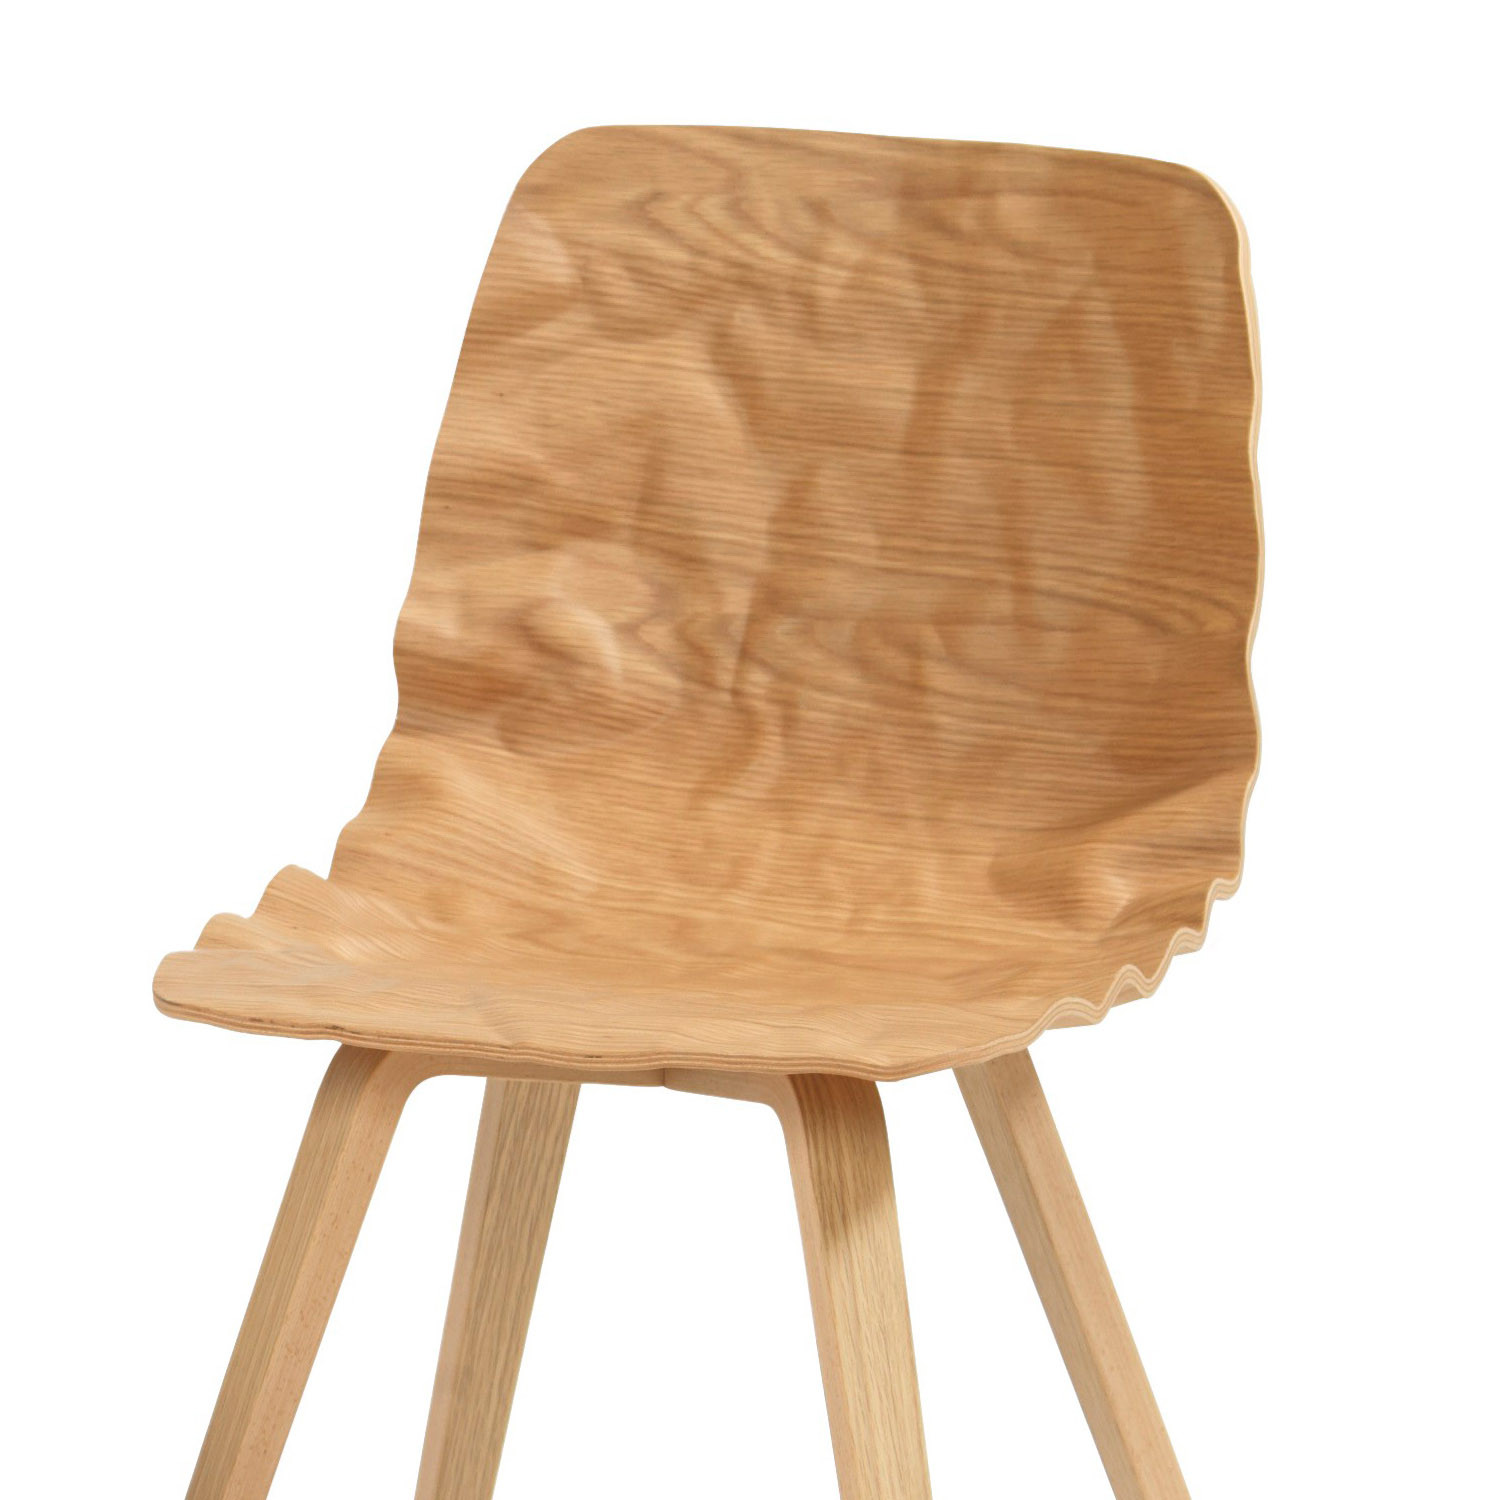 Dent Dressed Wooden Seat Shell B504D